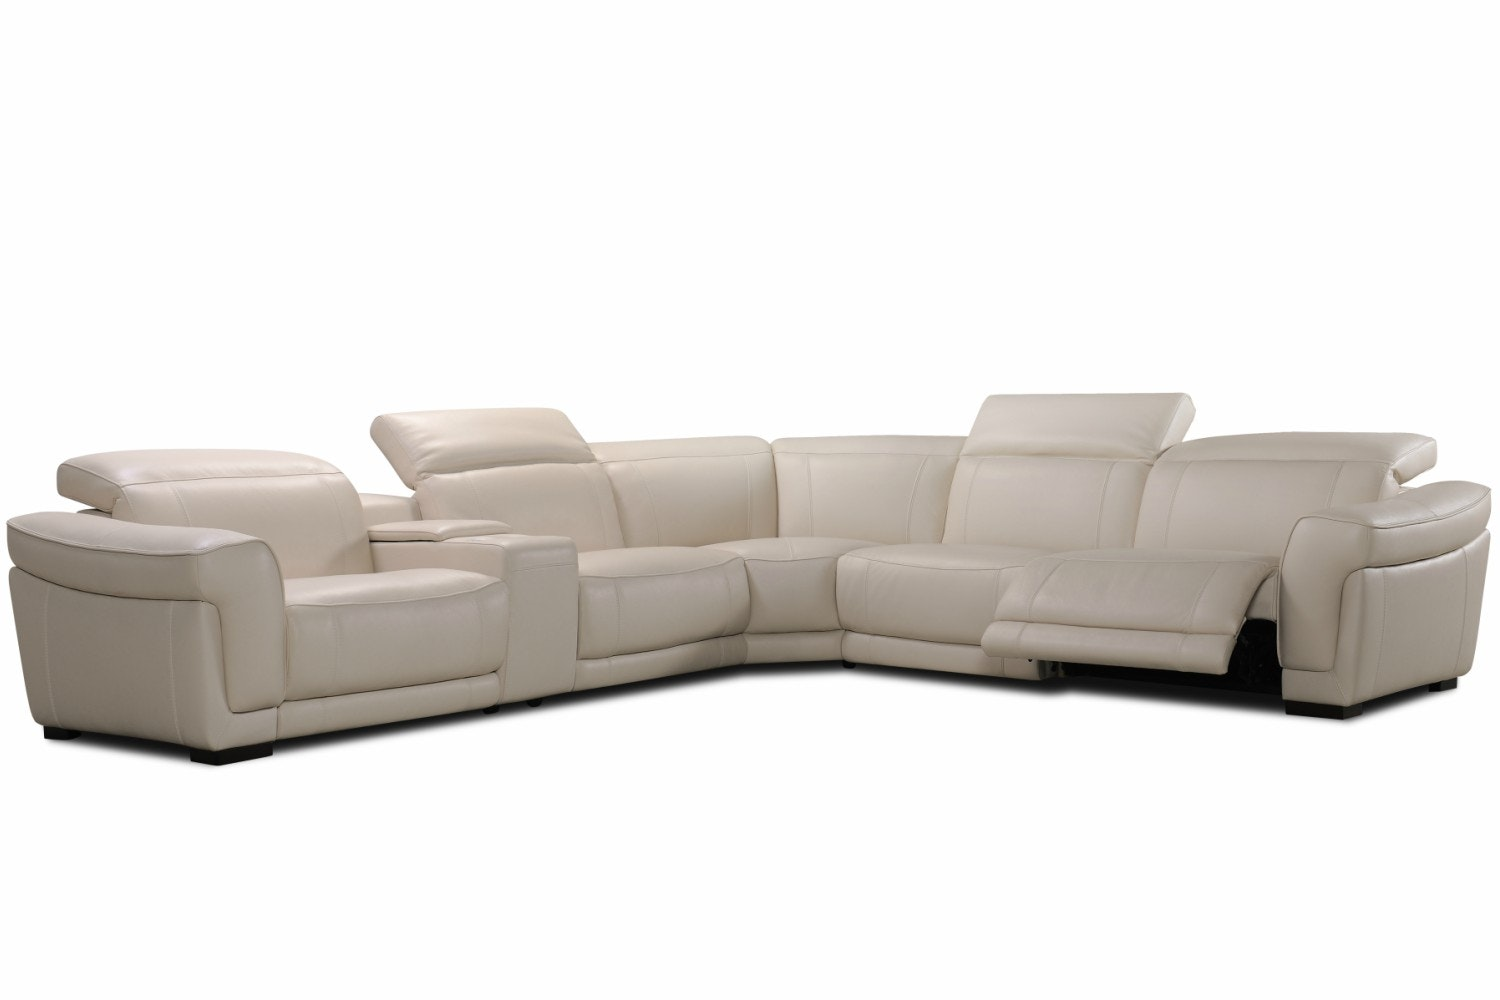 Leather Sofas Harvey Norman Ireland ~ Leather Sofa And Recliner